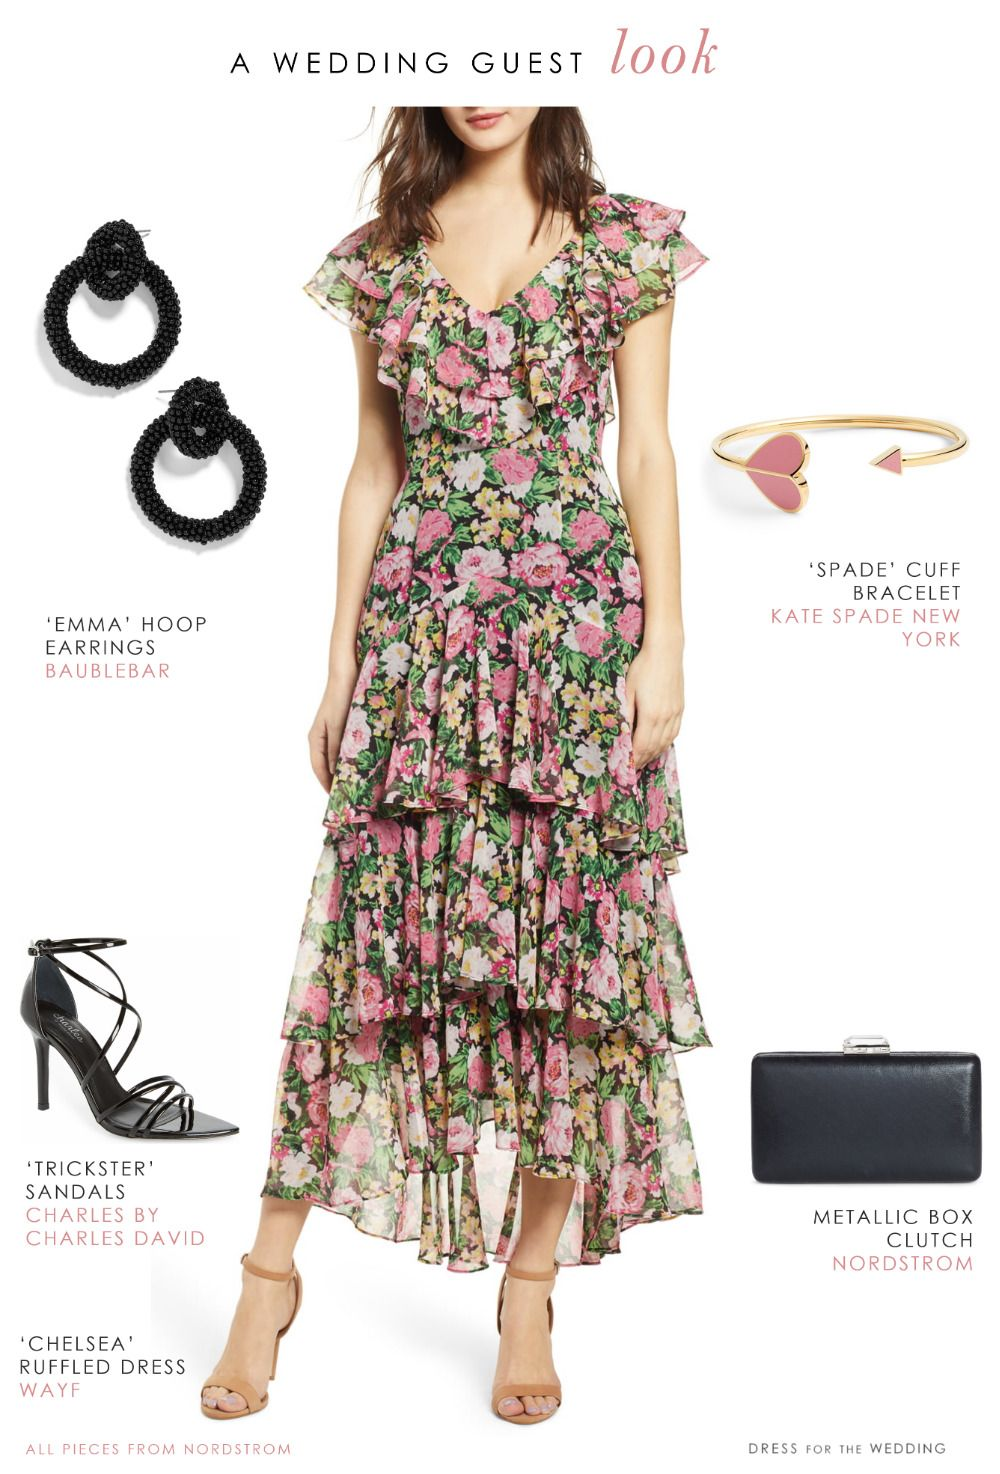 Getting Ready For The 2019 Wedding Season With Nordstrom Dress For The Wedding Wedding Guest Outfit Summer Dress Summer Dress Outfits Wedding Guest Outfit Summer